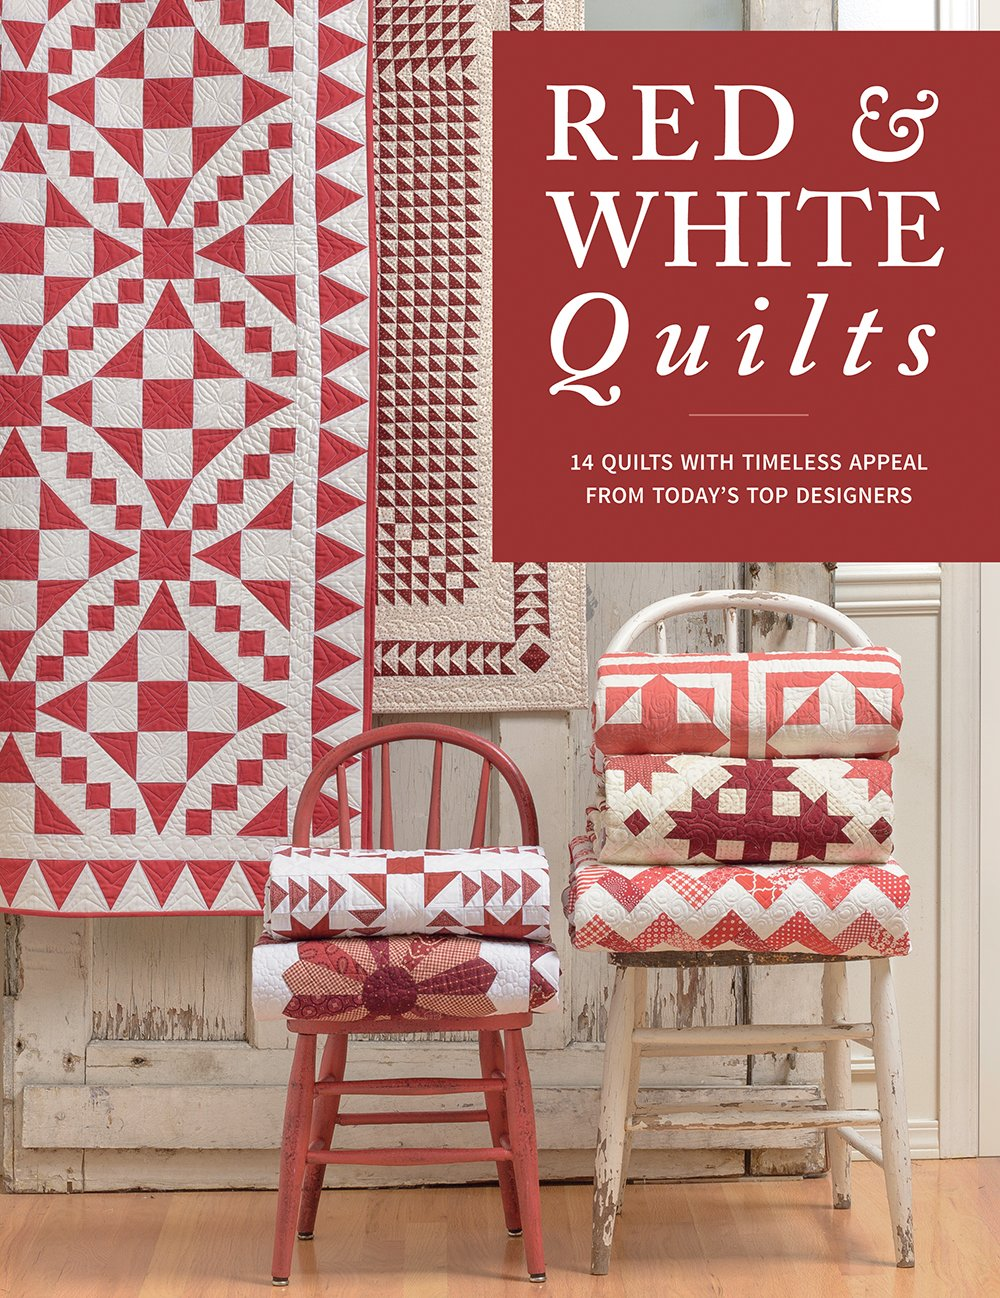 Red & White Quilts: 14 Quilts with Timeless Appeal from Today's